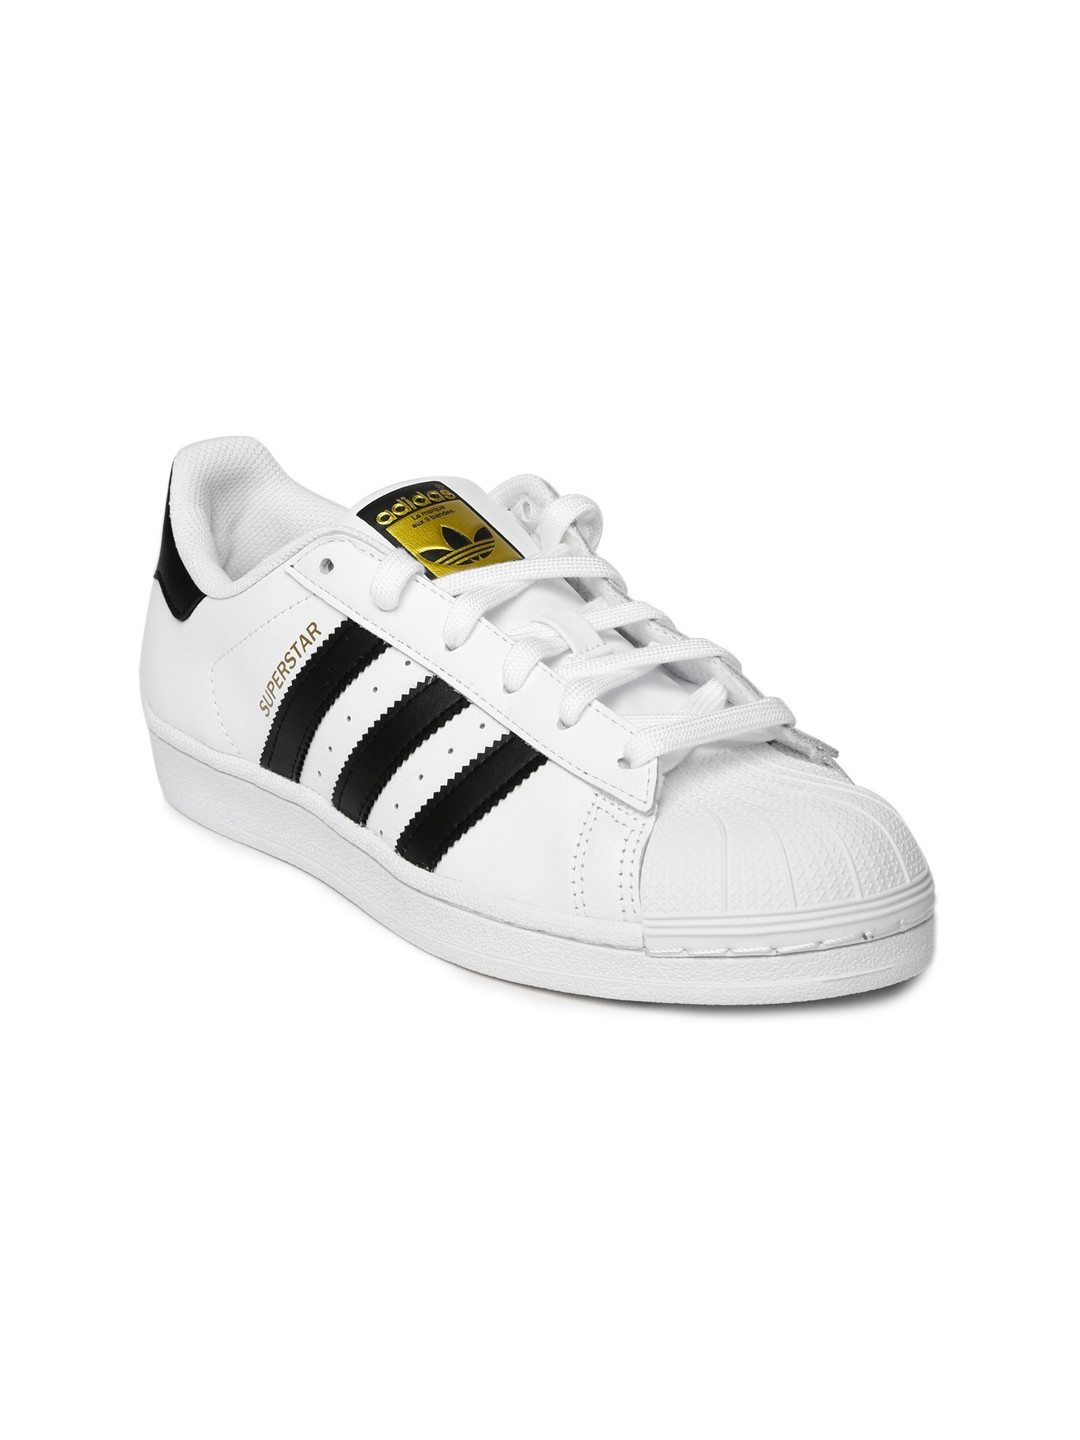 bfd7a1baab13 Buy ADIDAS Originals Women White Superstar Sneakers - Casual Shoes ...